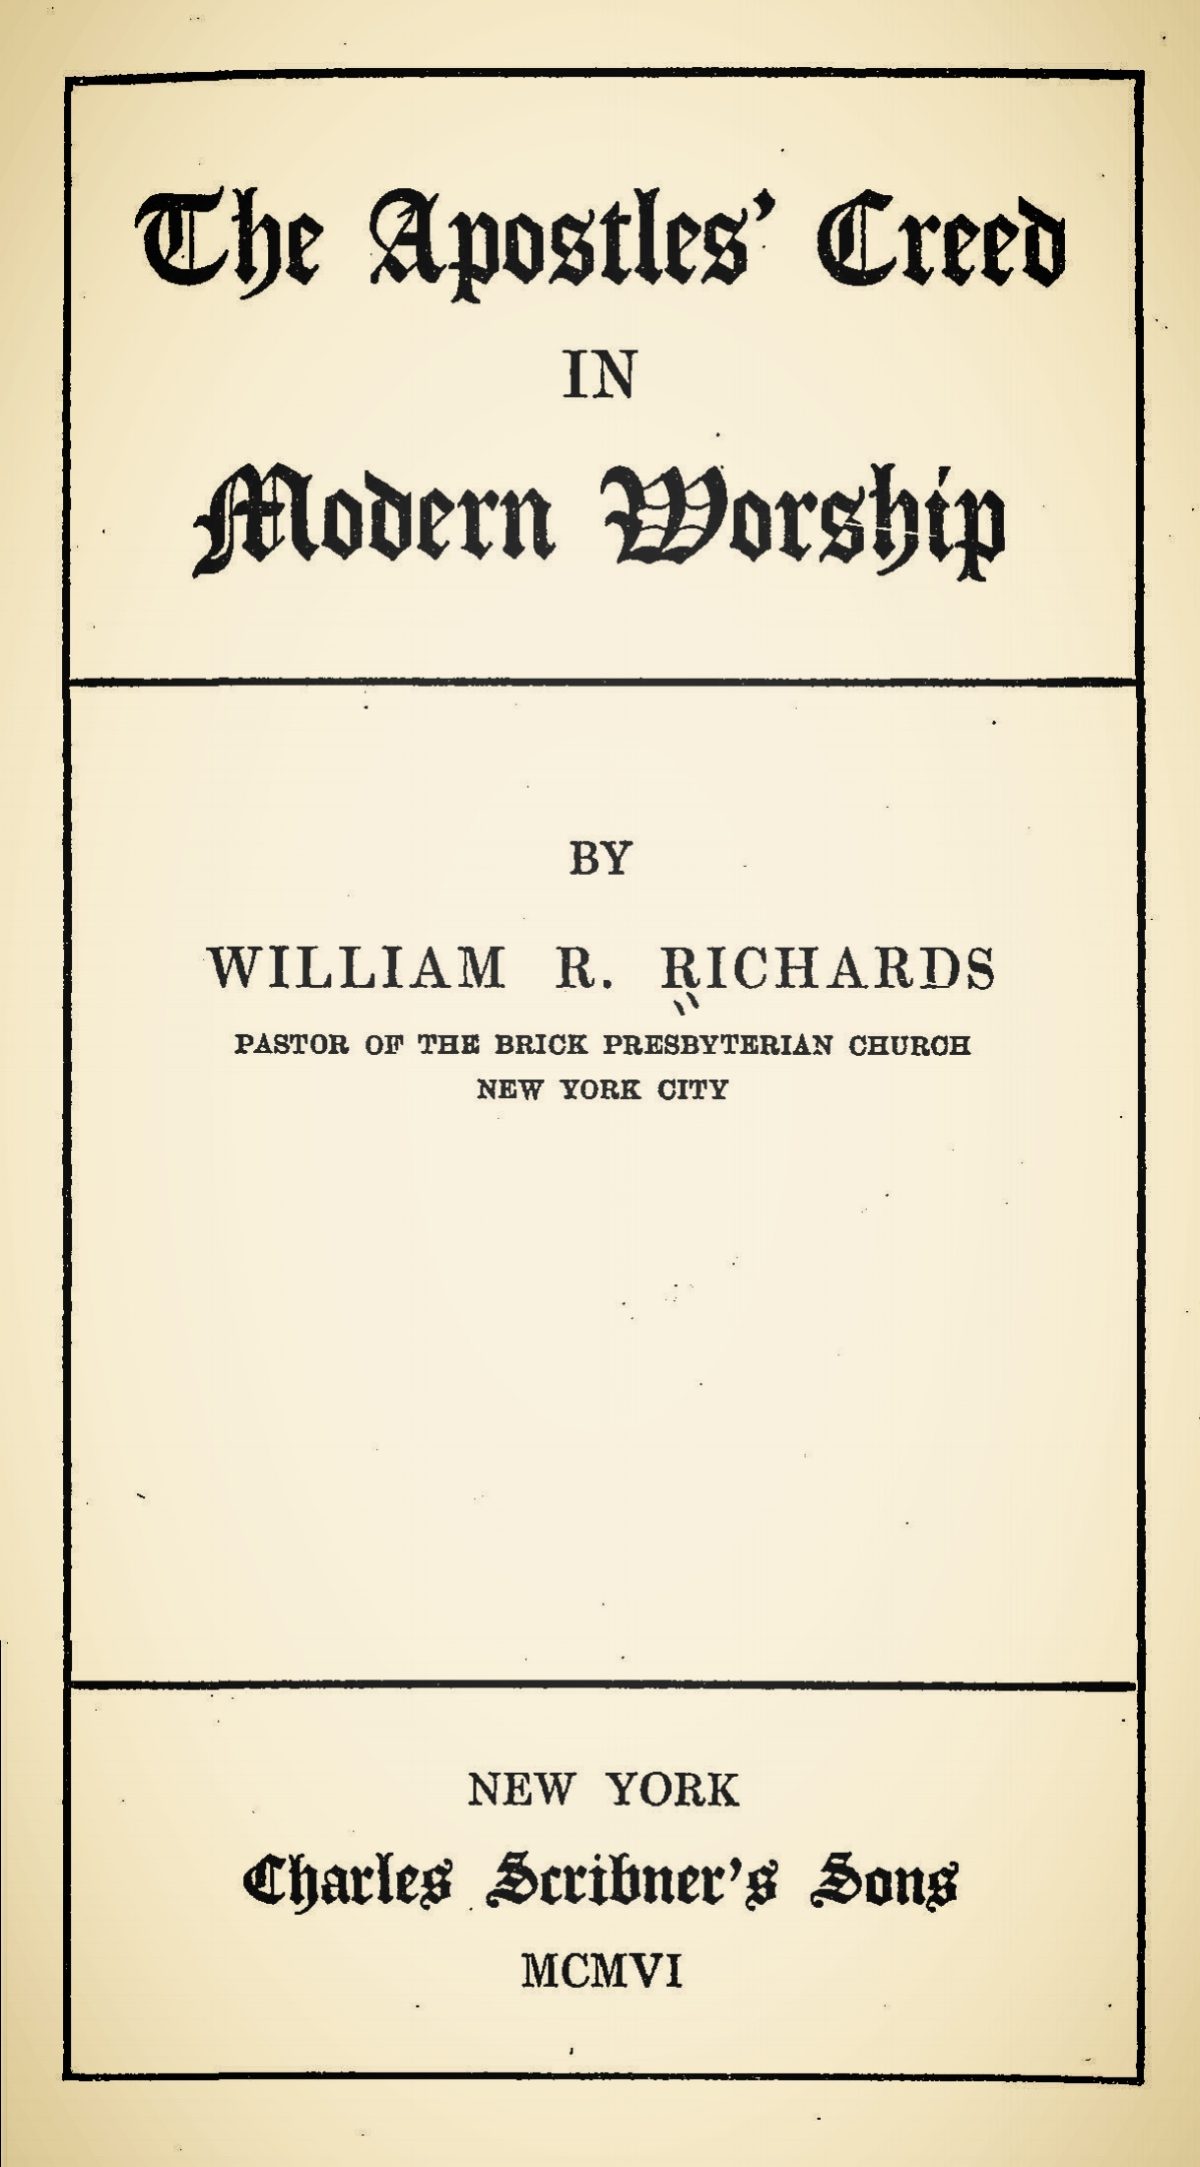 Richards, William Rogers, The Apostles Creed in Modern Worship Title Page.jpg